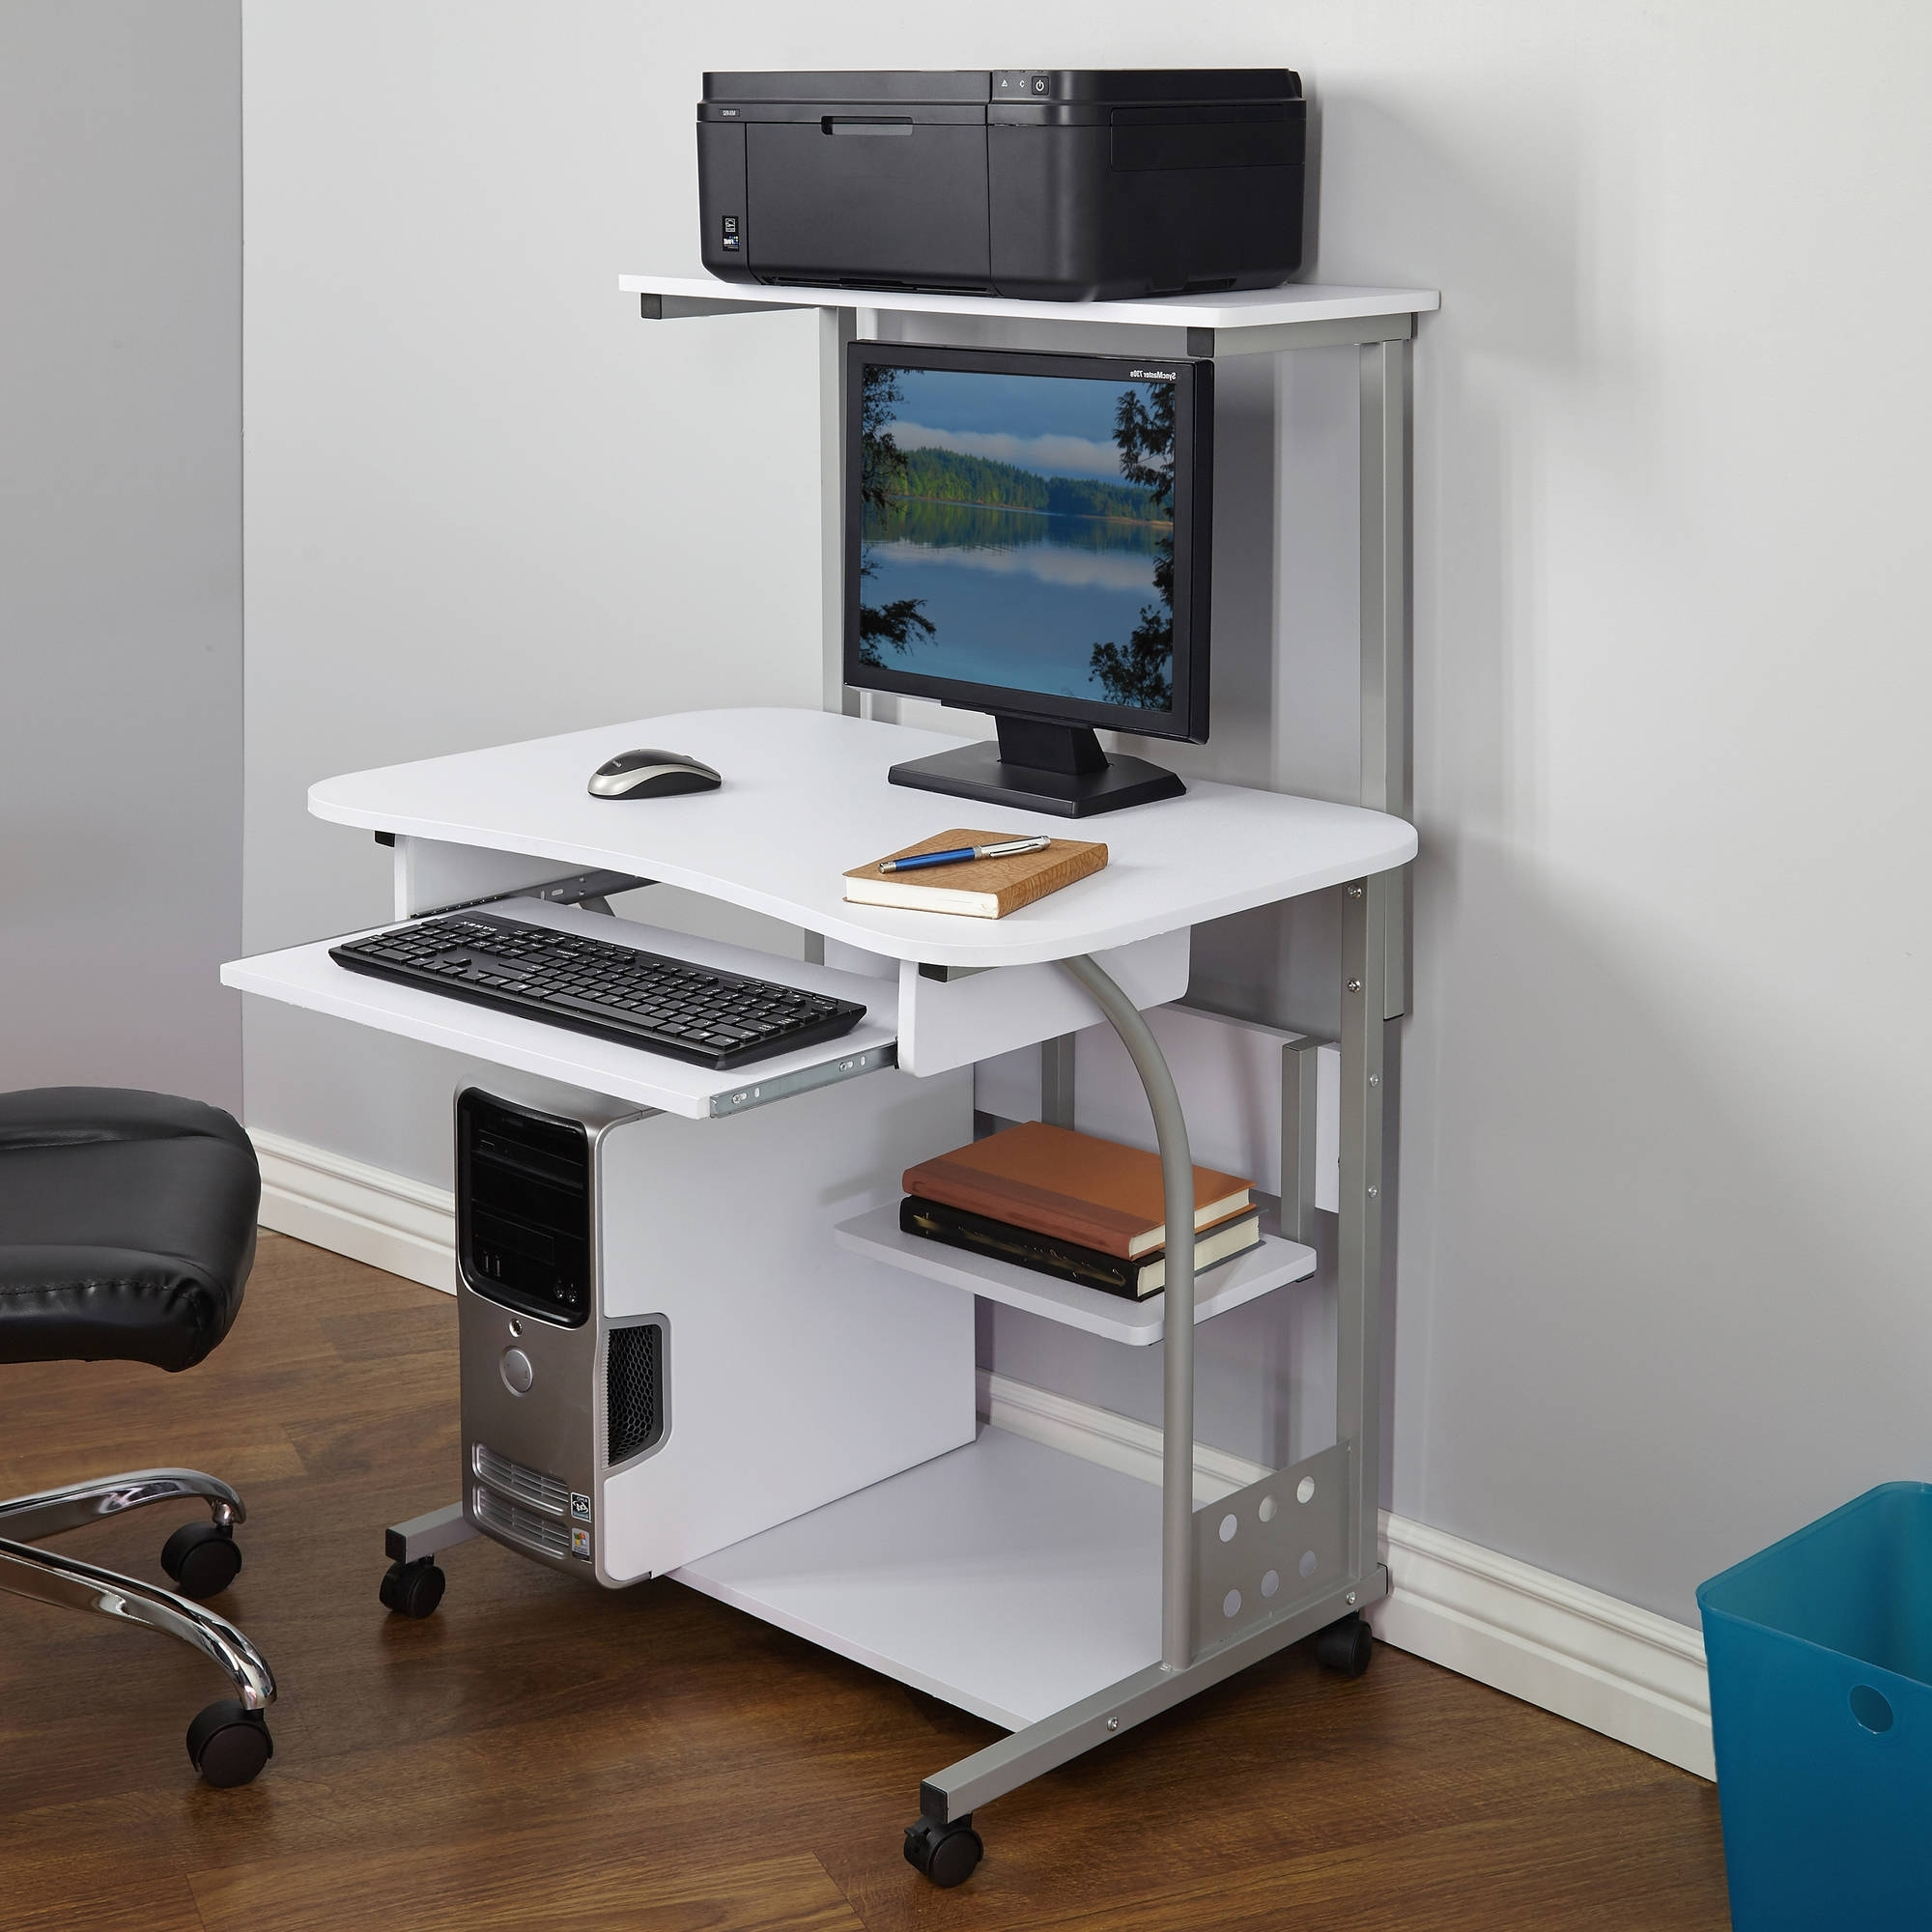 Computer Desks With Printer Shelf In 2018 Computer Table Tower Sturdy Mobile Desk With Printer Shelf New (View 1 of 20)